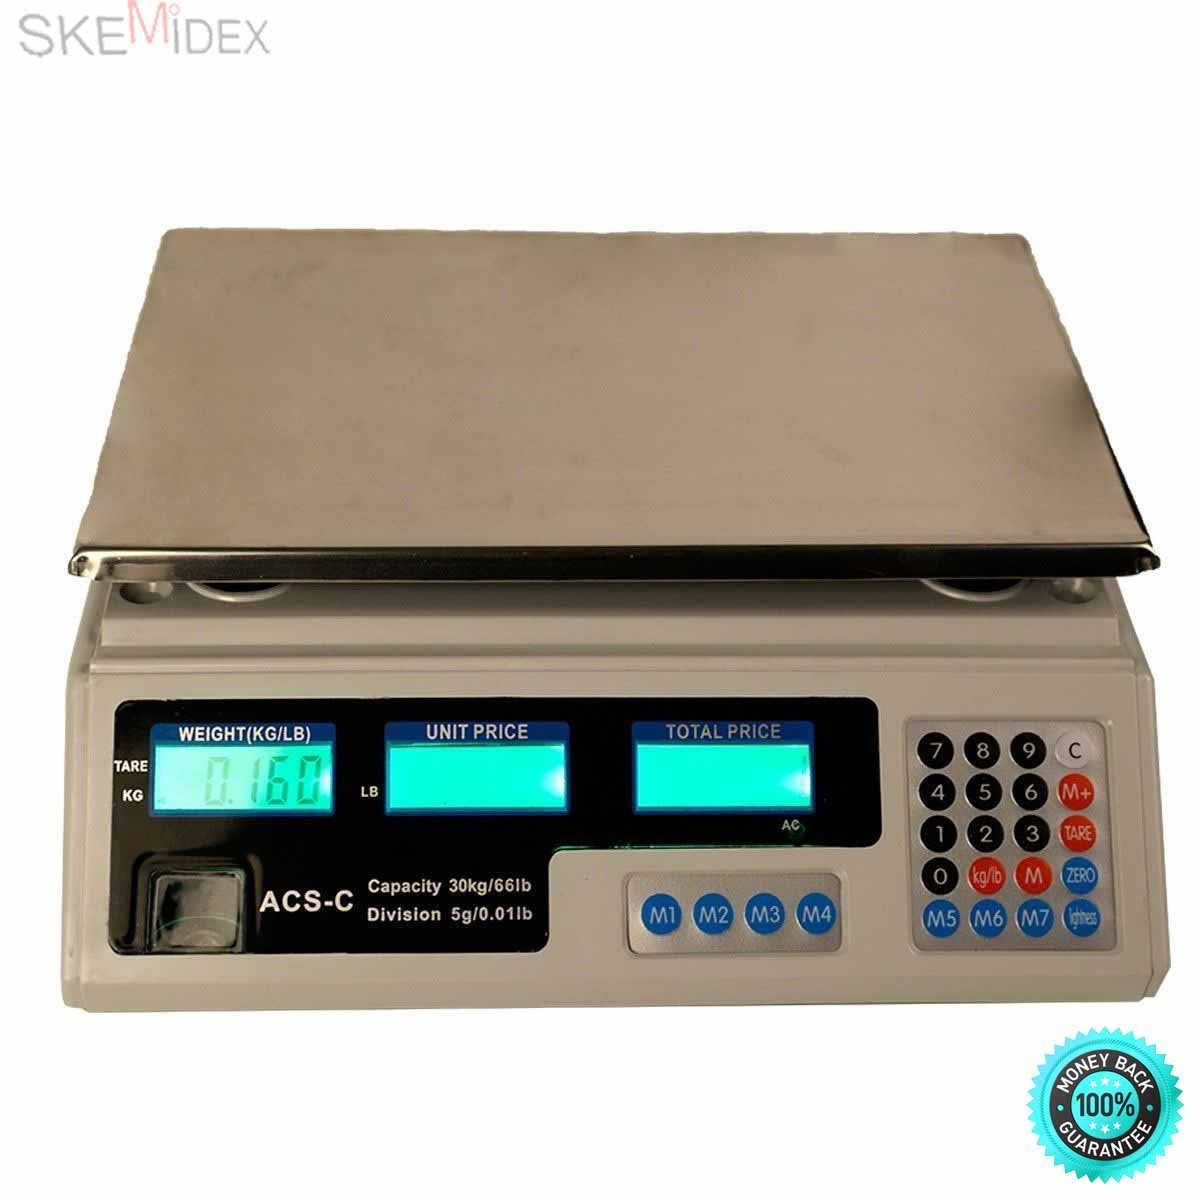 SKEMiDEX--- 66Lbs Digital Weight Scale Price Computing Retail Food Meat Scales Count Scale Suitable For Super Markets, Grocery Stores And Other Retail Outlets Tare Function: Measure The Net Weight by SKEMiDEX